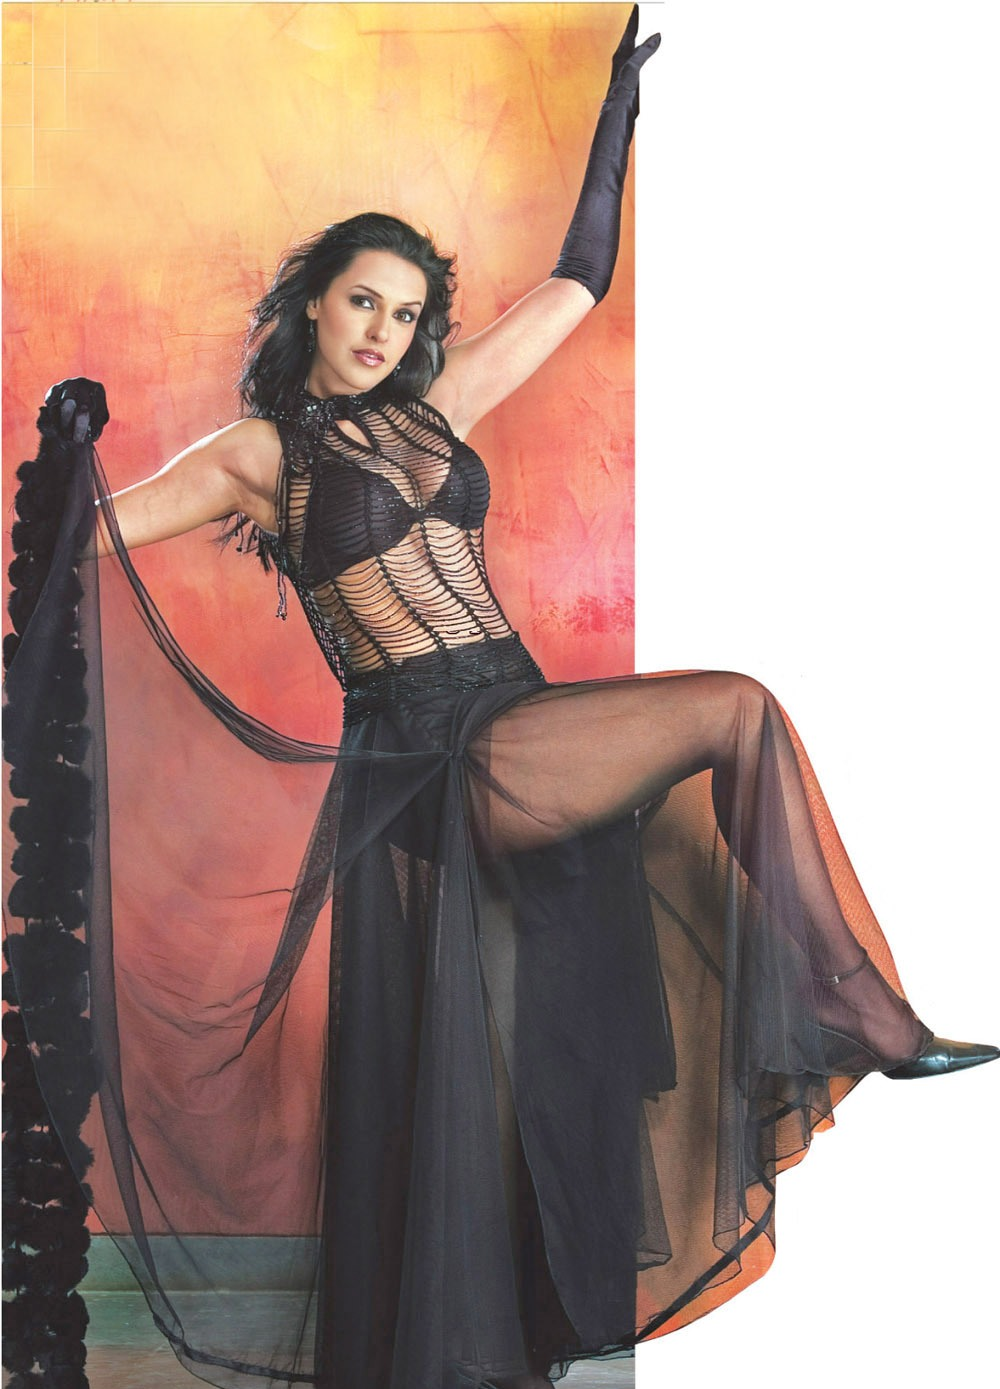 Neha Dhupia hot Pic in Black lingerie1 - Neha Dhupia Hot Pics in Black lingerie